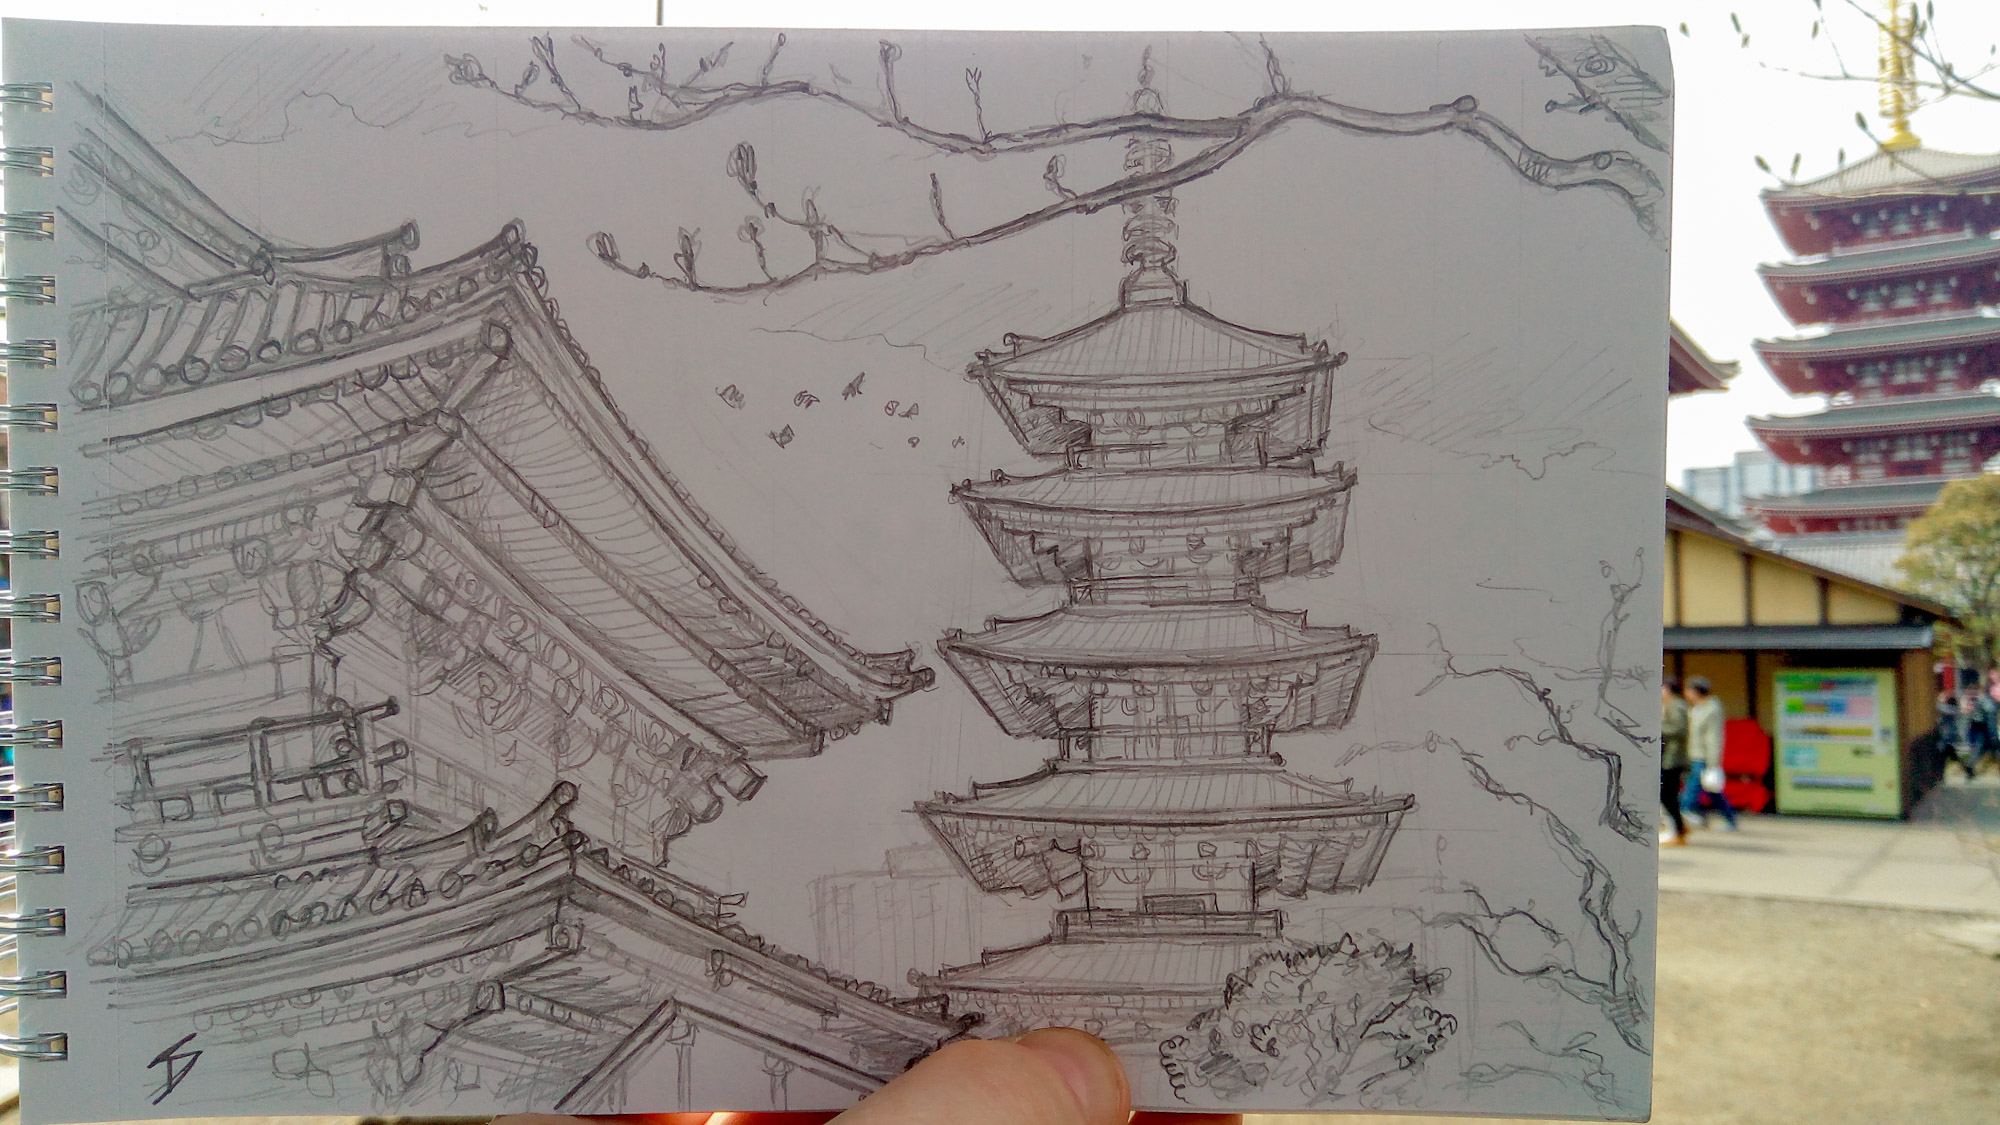 Urban photo art - Asakusa, Tokyo, Japan. 'Senso-ji Temple.' While sketching this, I experienced the first sign of Japanese love for art, as onlookers would happily come over to me and express their delight at my work. sketchbookexplorer.com @davidasutton @sketchbookexplorer Facebook.com/davidanthonysutton #japan #tokyo #asakusa #Sensojitemple #travel #travelblog #art #sketching #cheeryblossom #cherryblossomseason #cherryblossomjapan